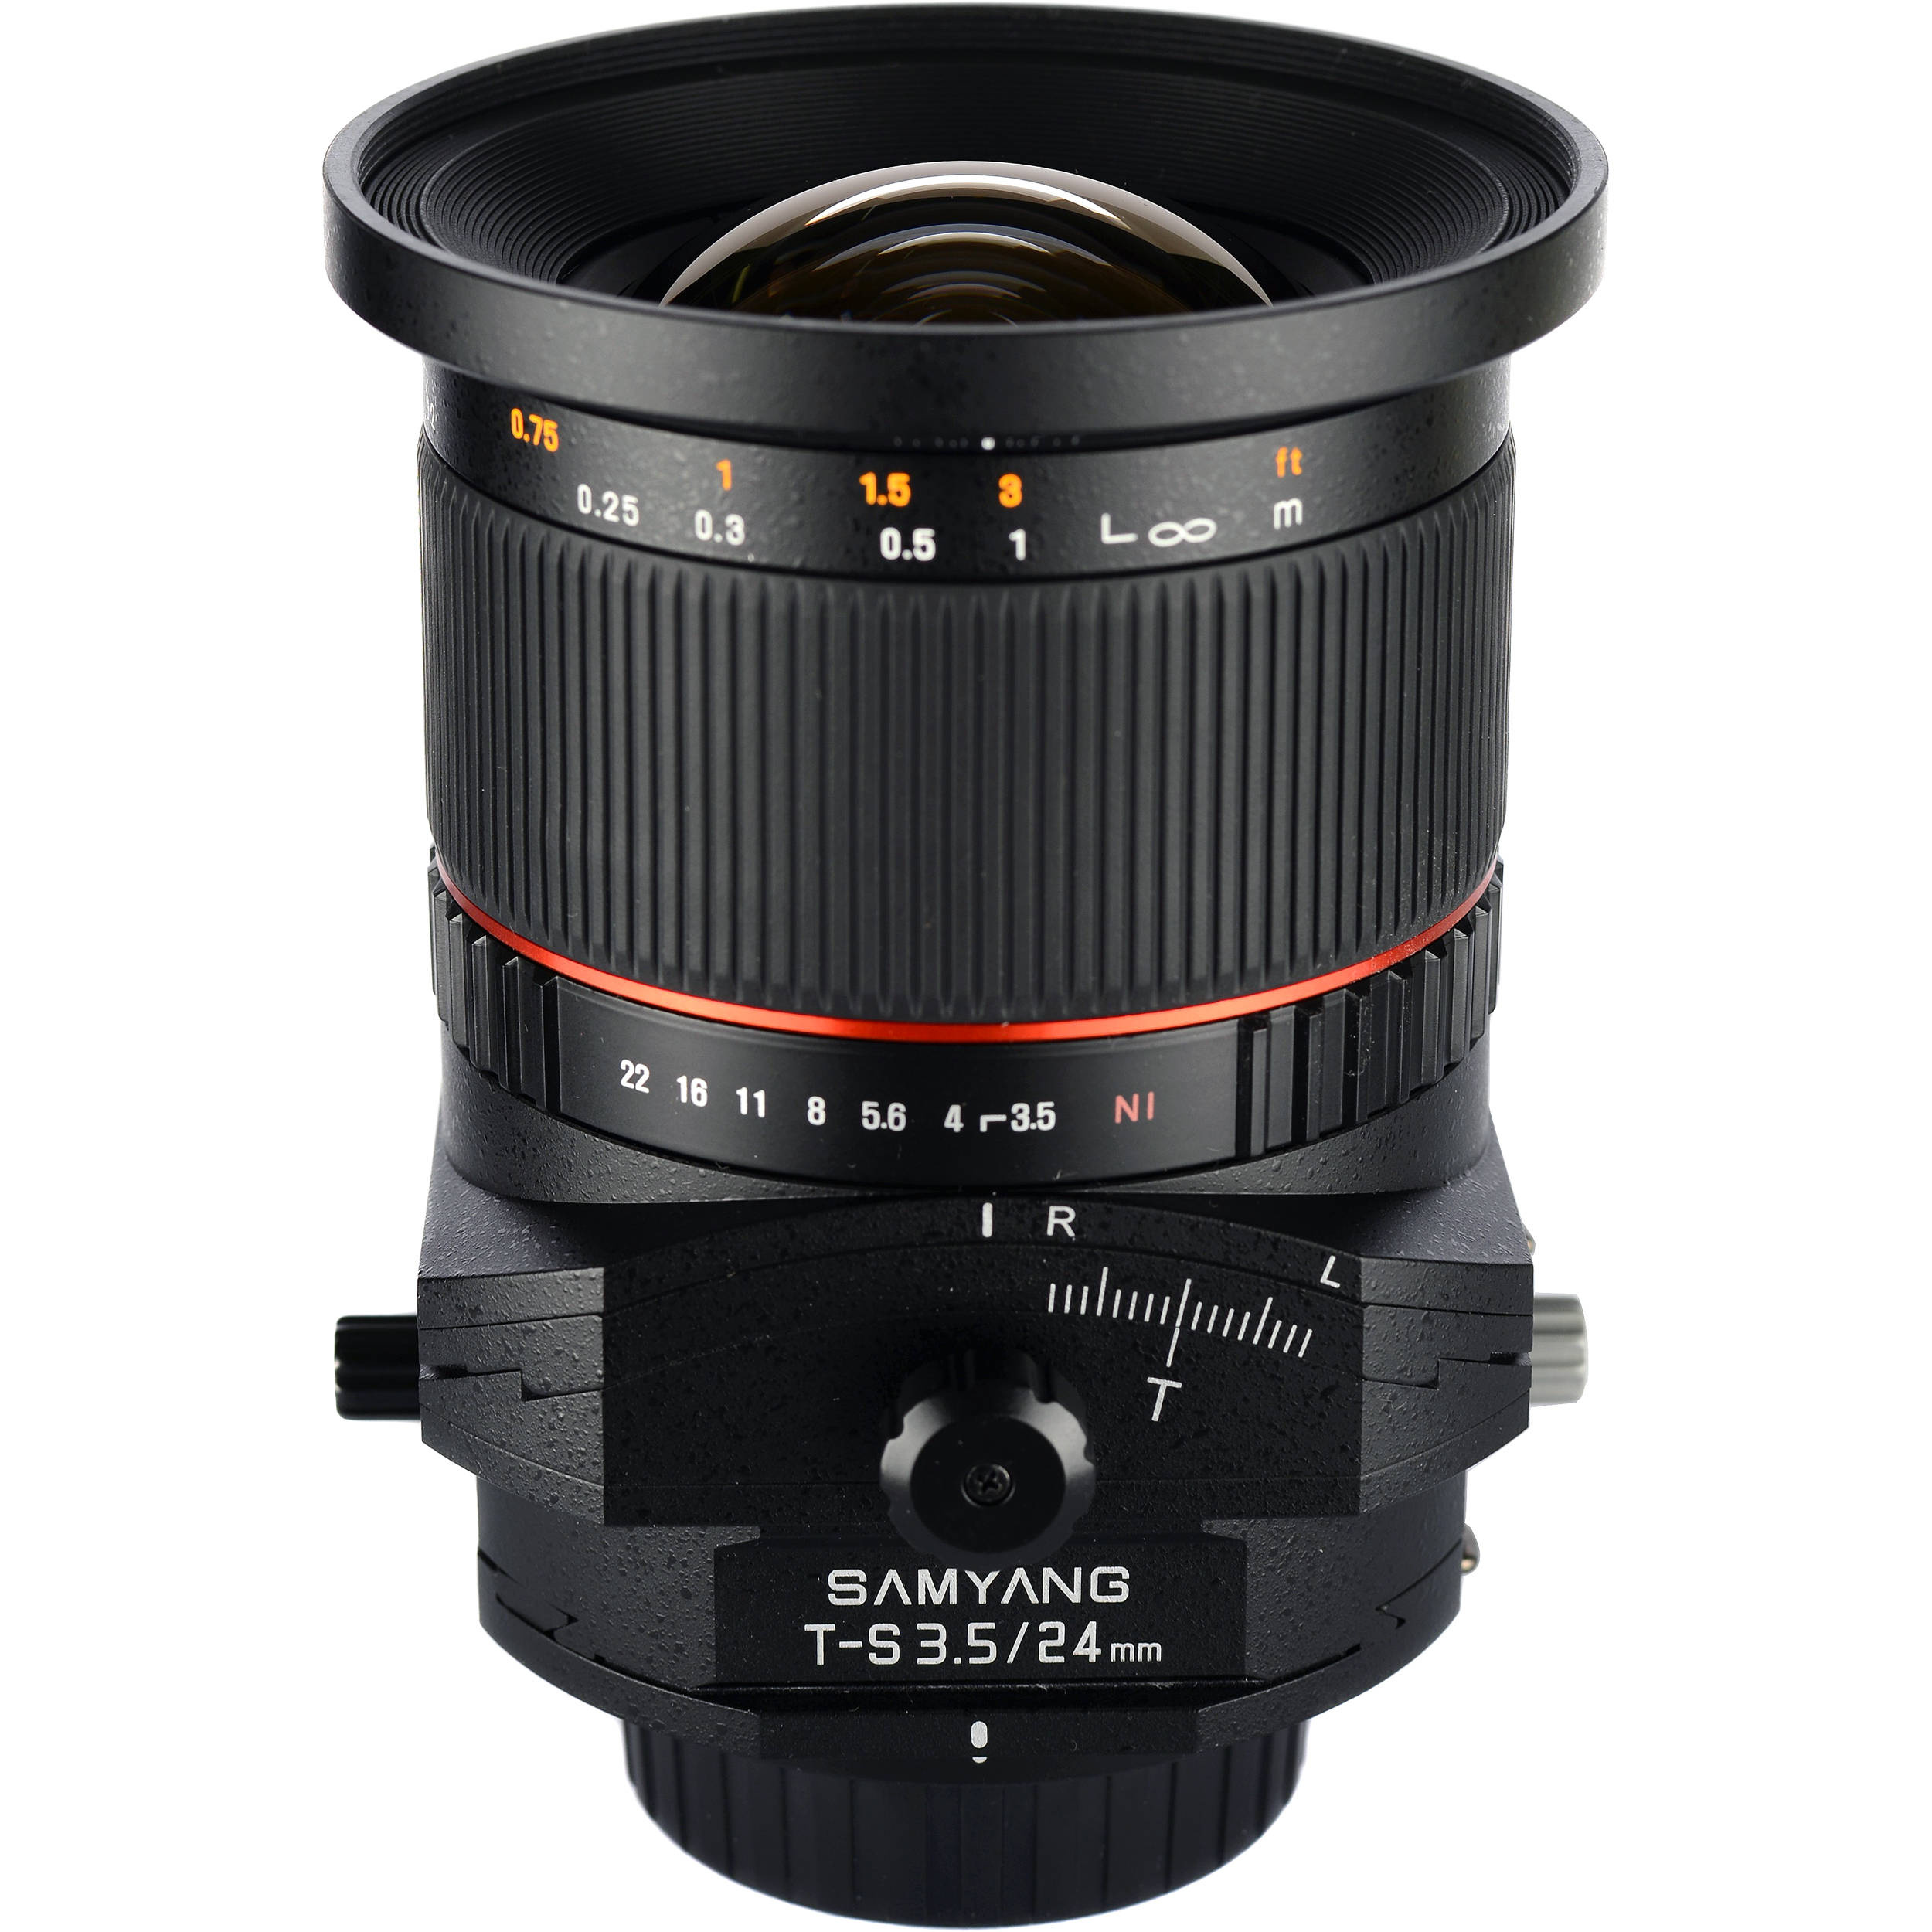 Samyang 24mm f/3.5 ED AS UMC Tilt-Shift Lens (Nikon)